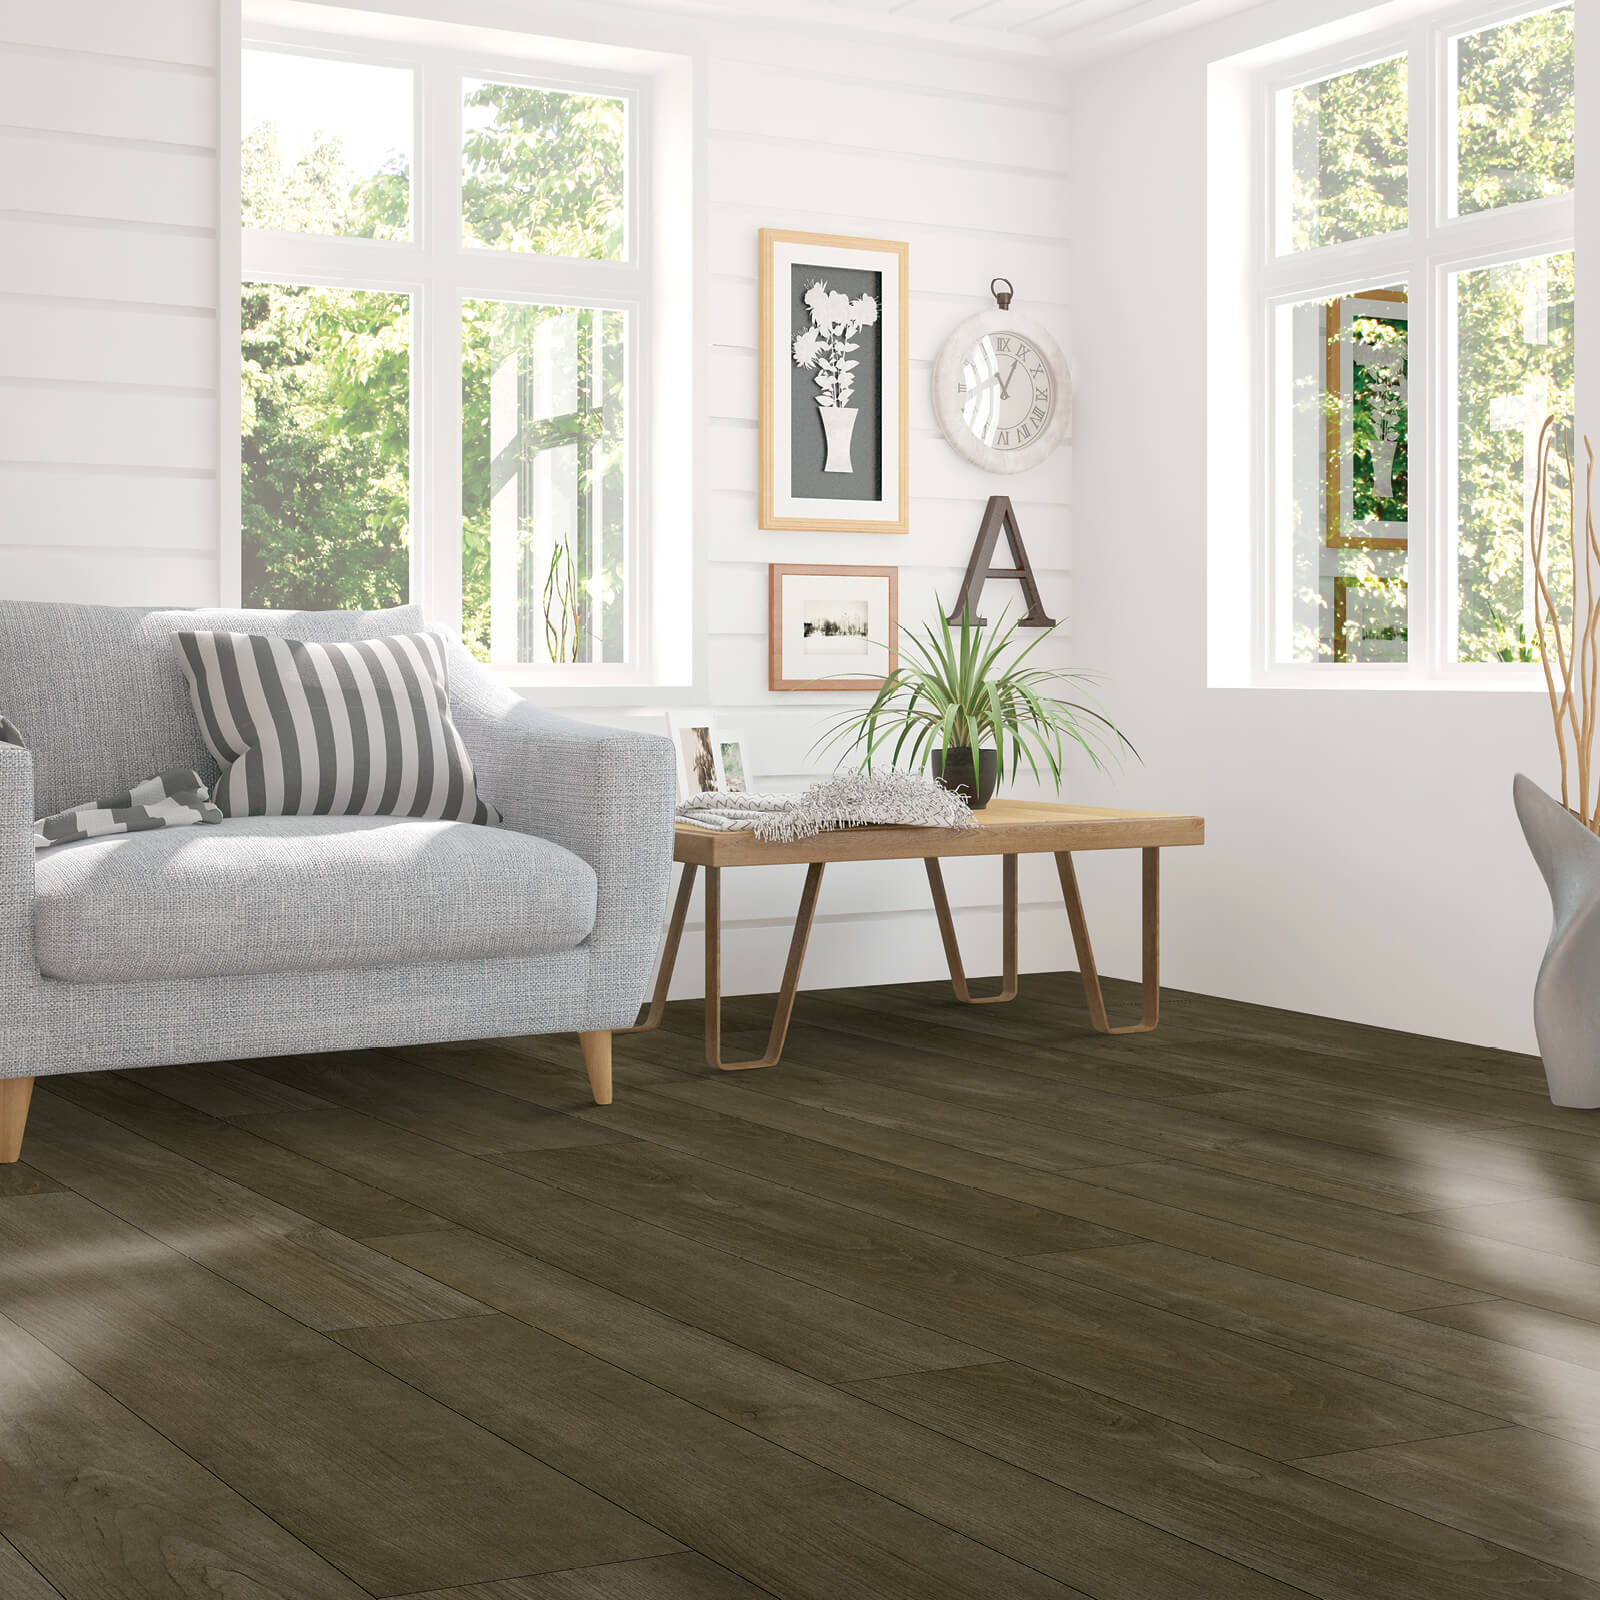 Laminate floors are the perfect substitute for hardwood floors | BMG Flooring & Tile Center